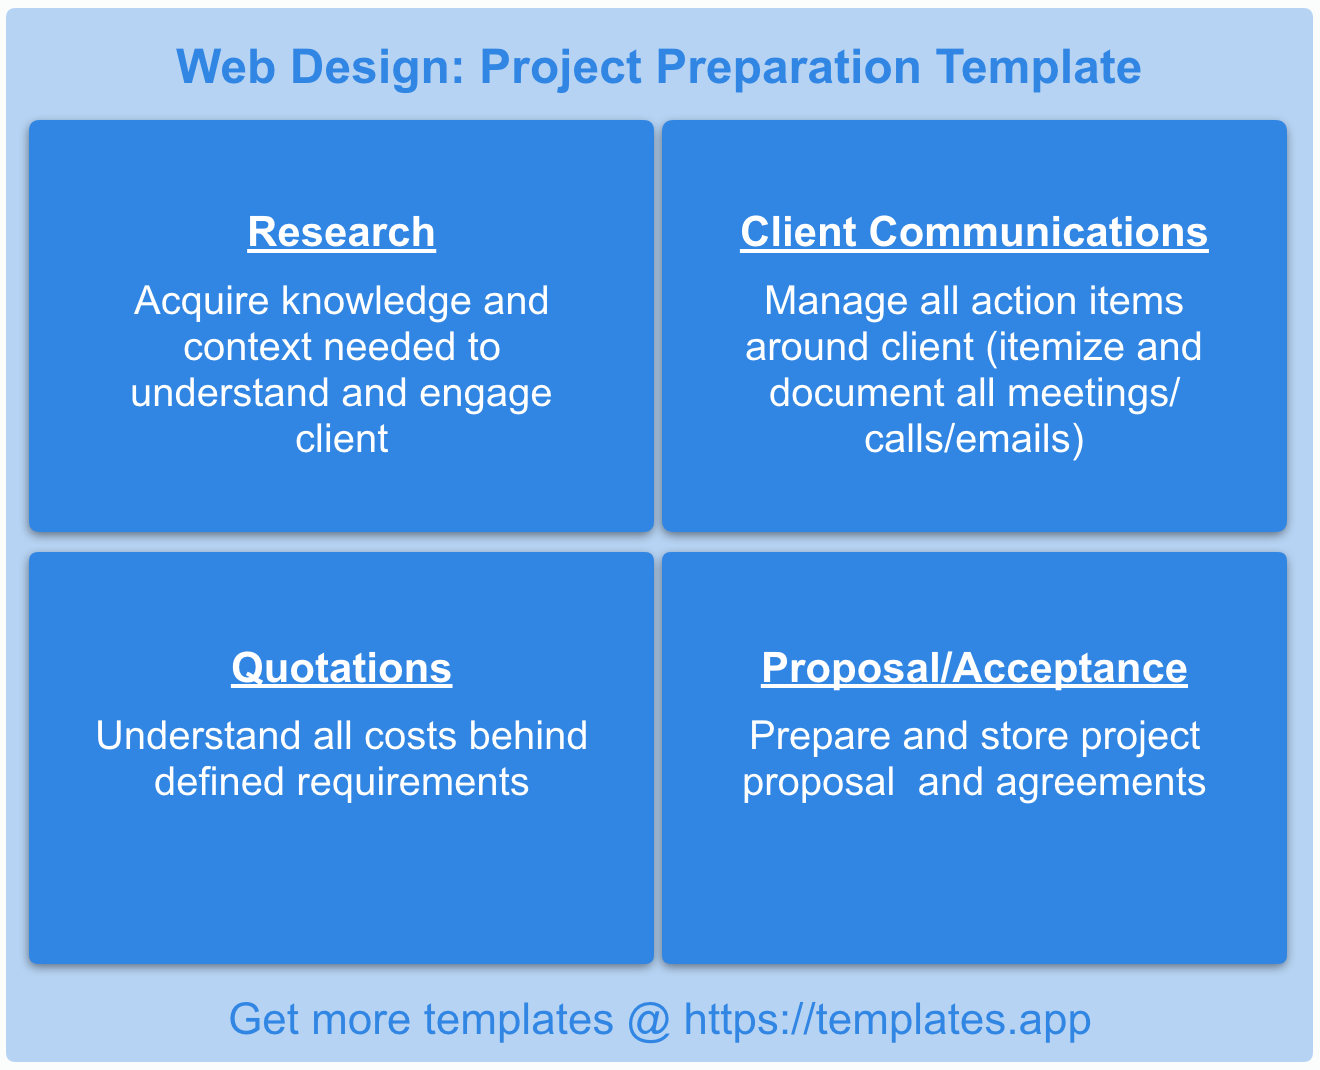 Web Design: Project Preparation Template by templates.app